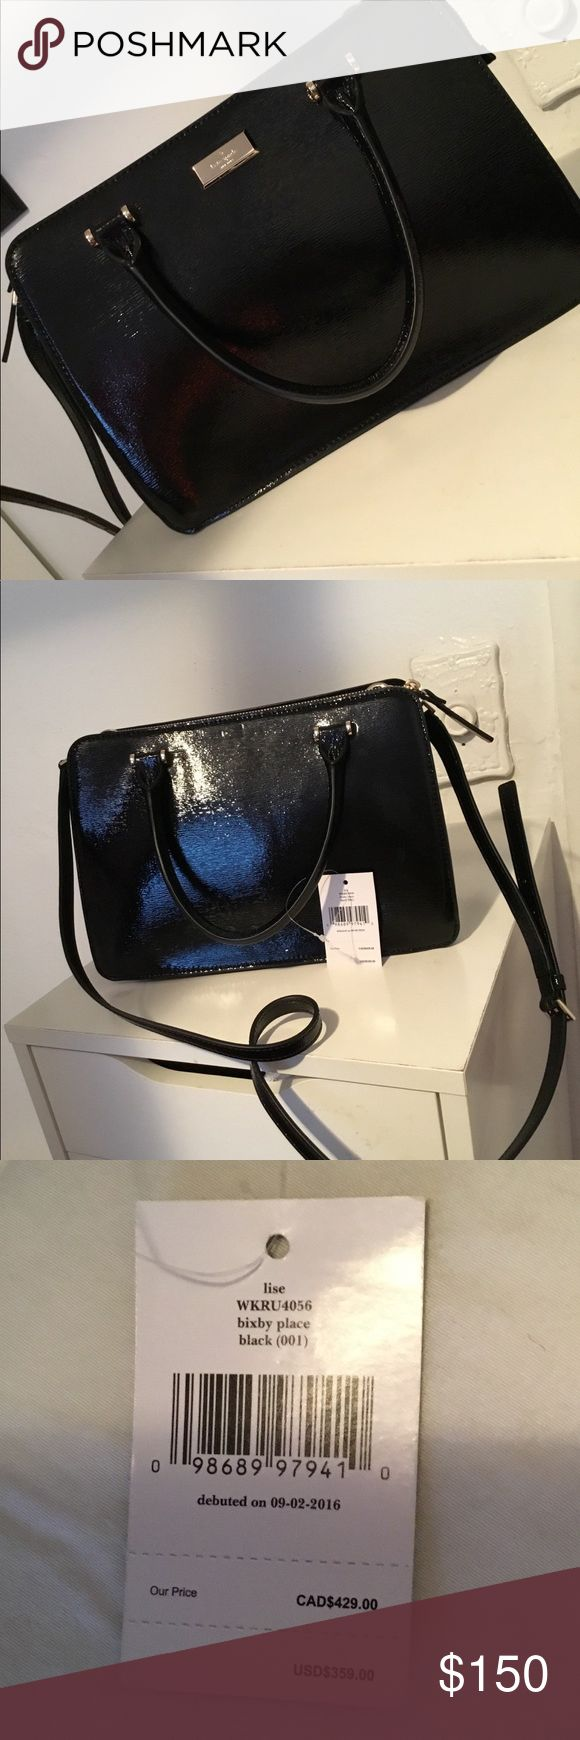 """Kate Spade Black Leather """"Bixby Place"""" Brand New. Never used. Beautiful black leather purse. kate spade Bags Crossbody Bags"""